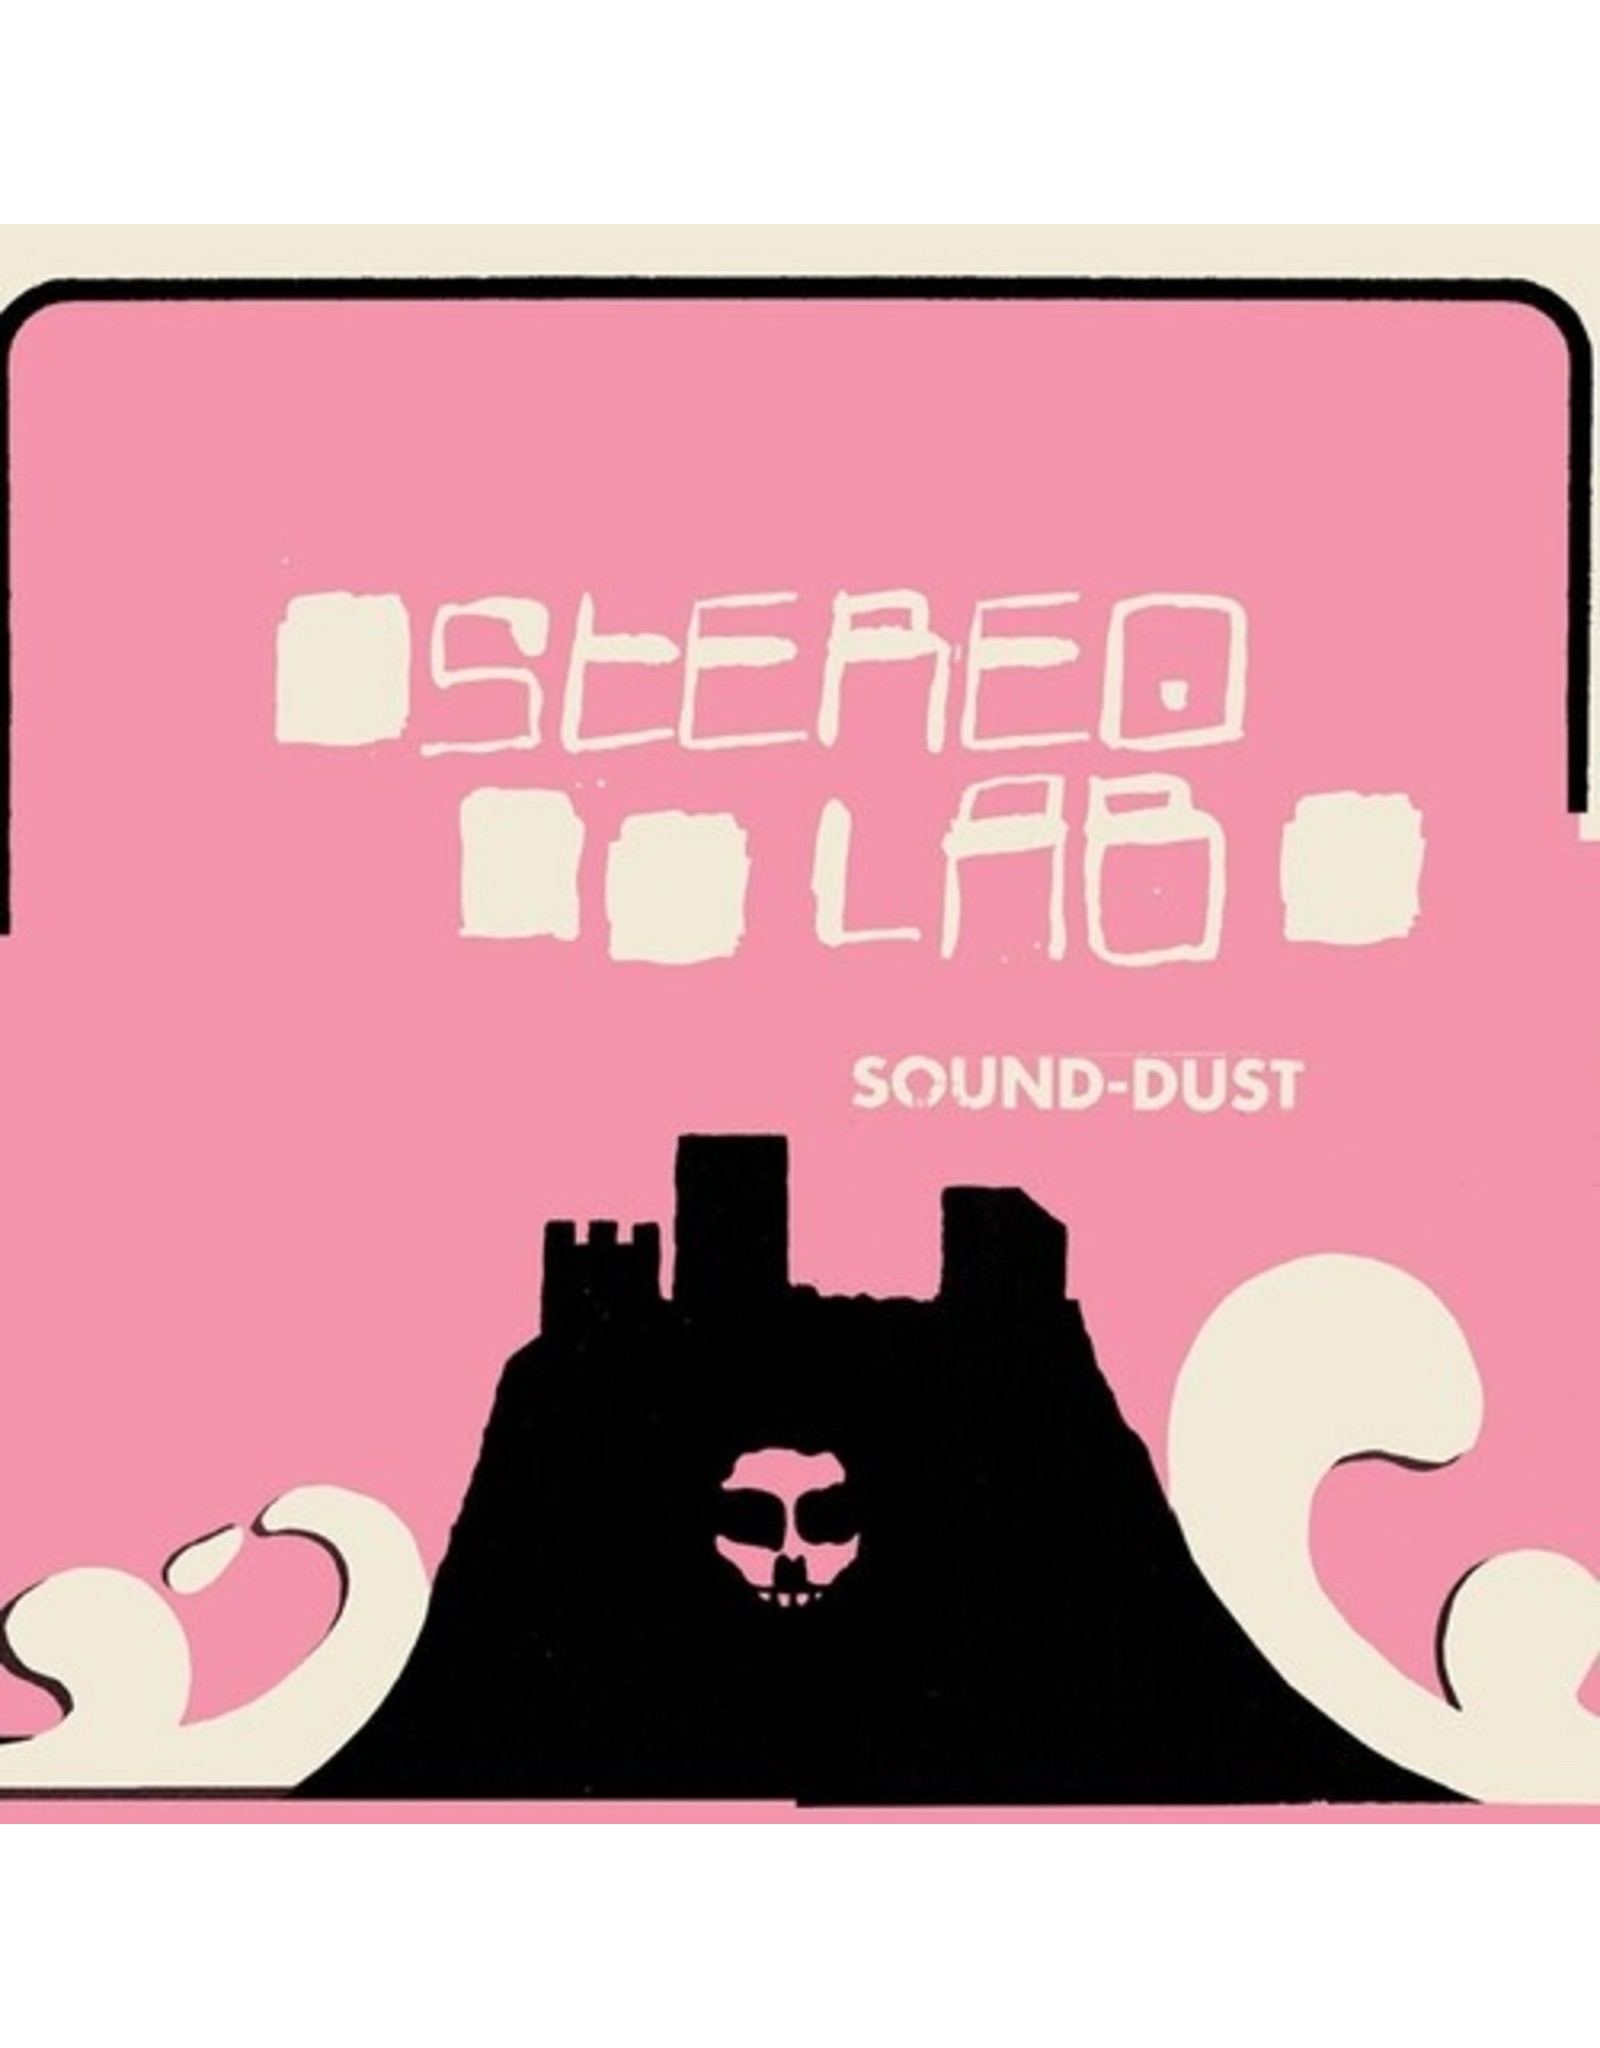 New Vinyl Stereolab - Sound-Dust (Expanded) 3LP